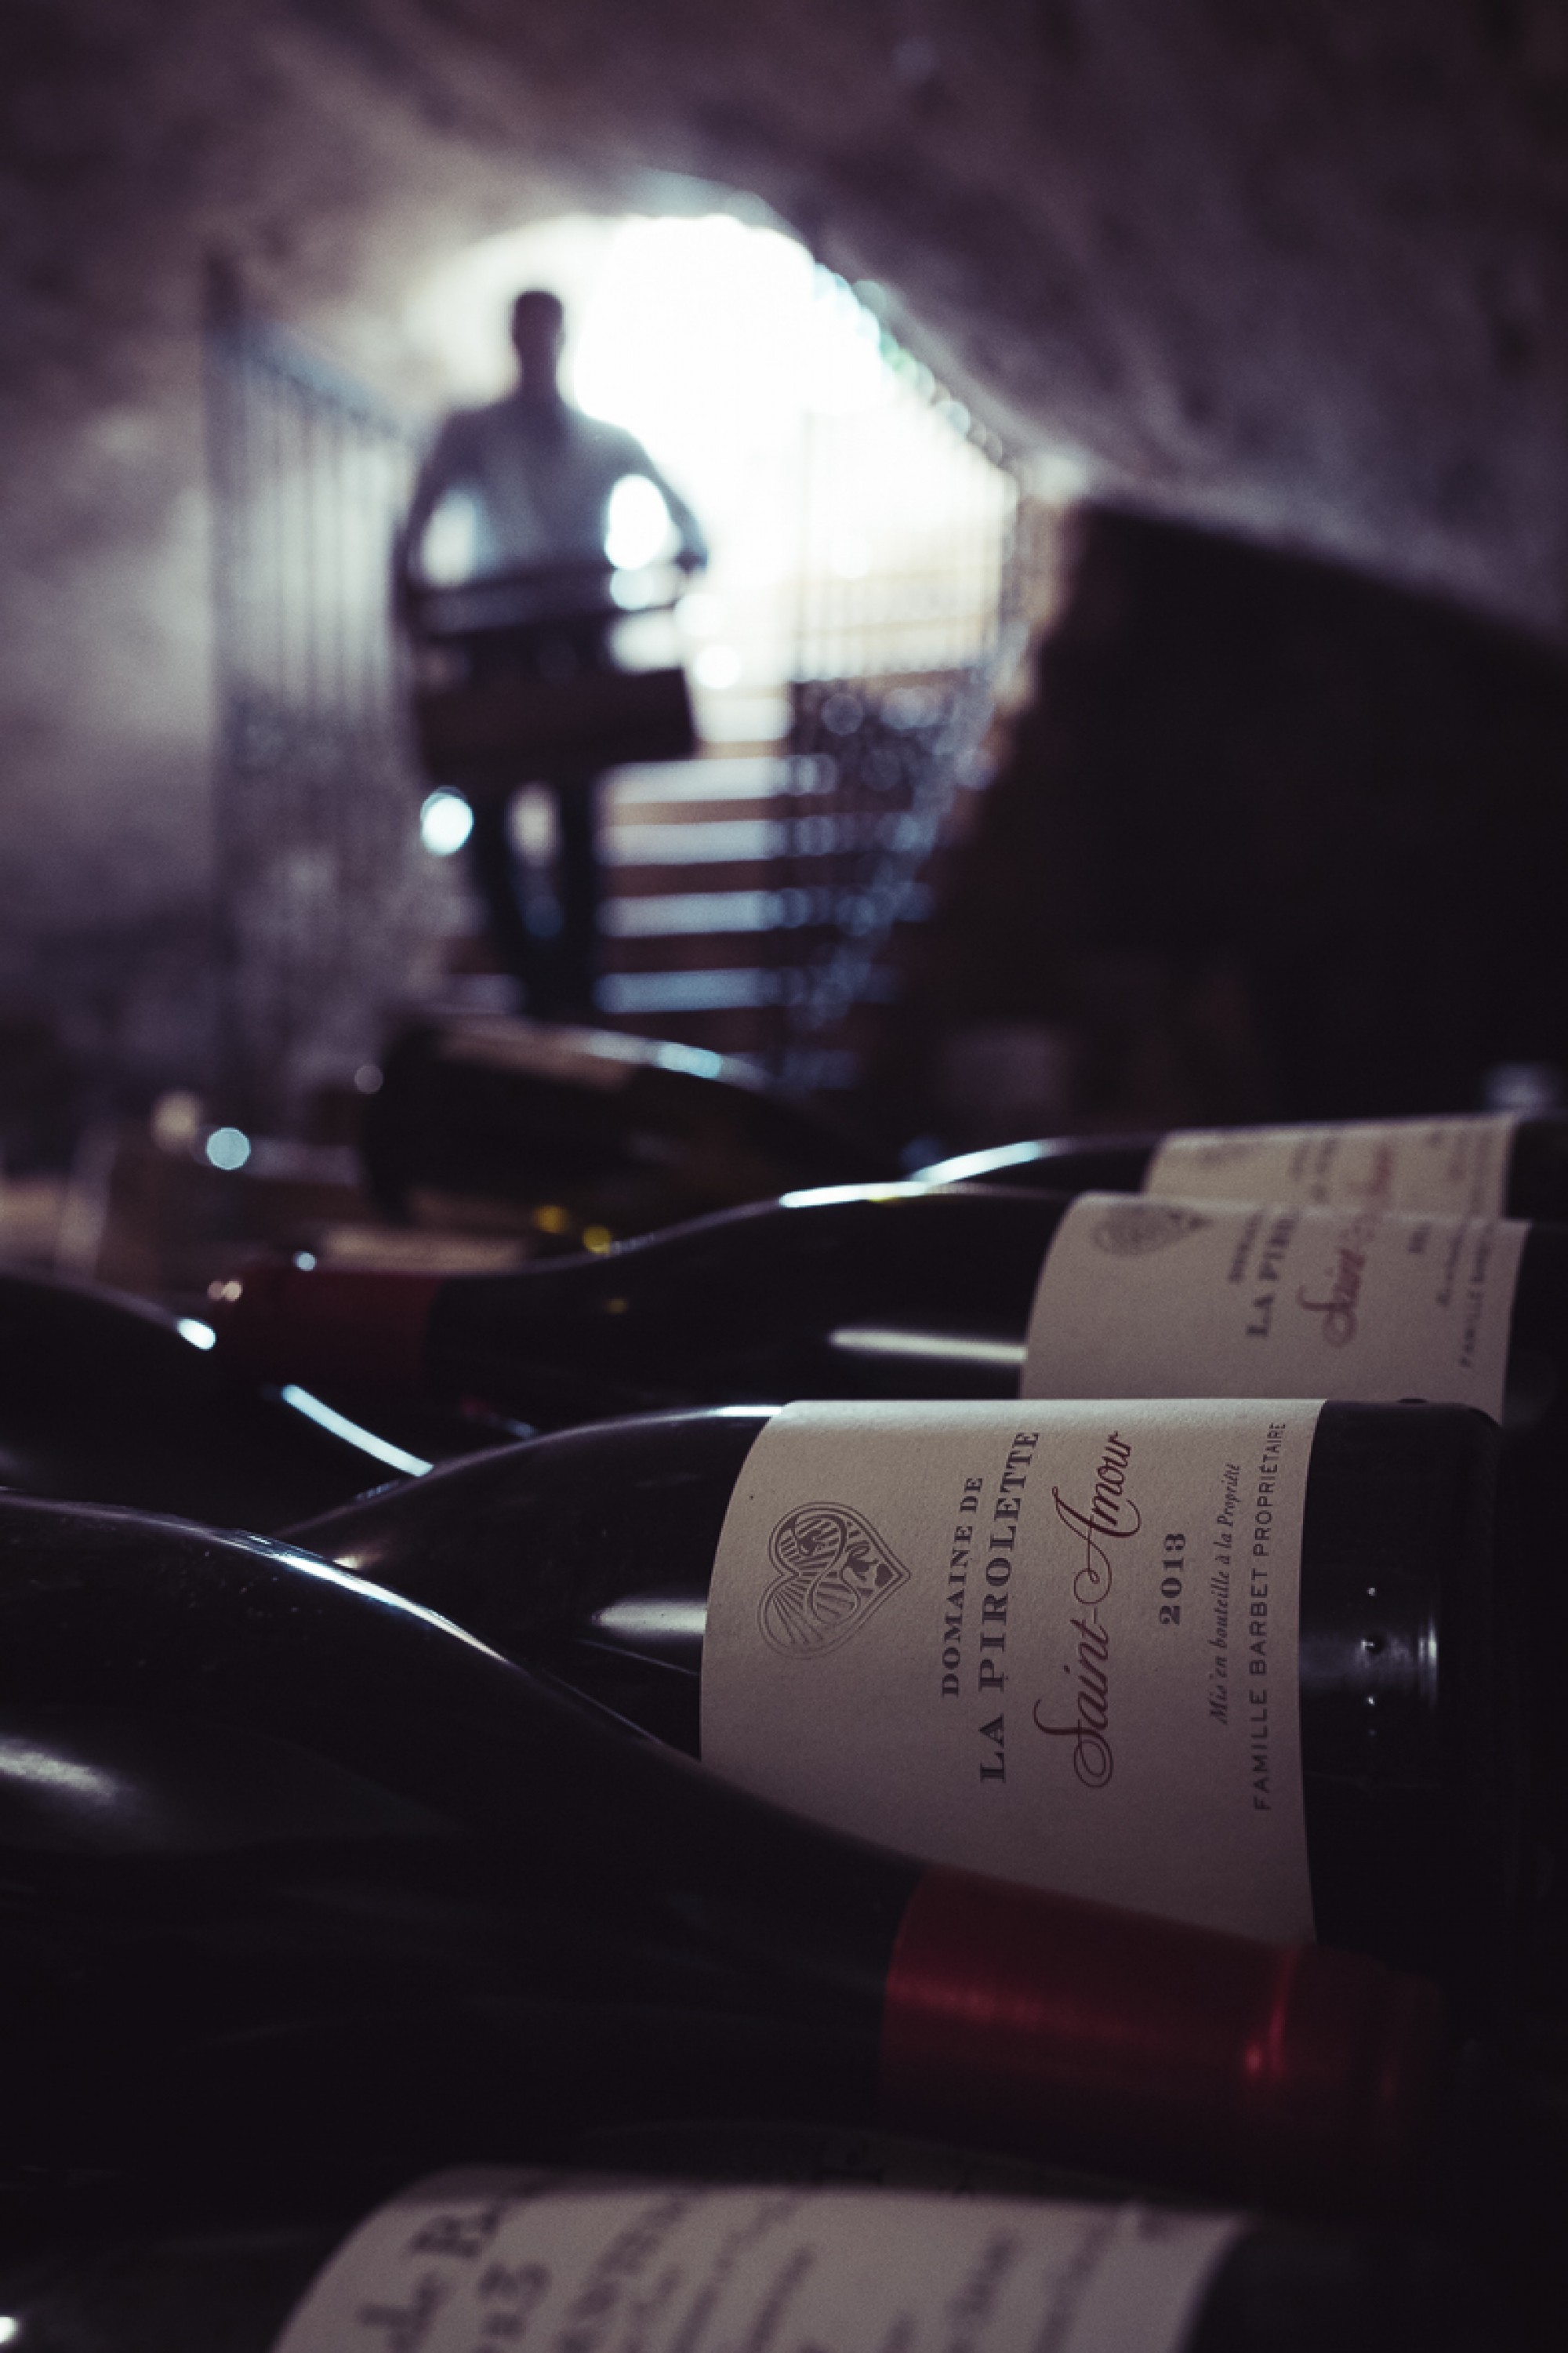 The cellar at the domaine